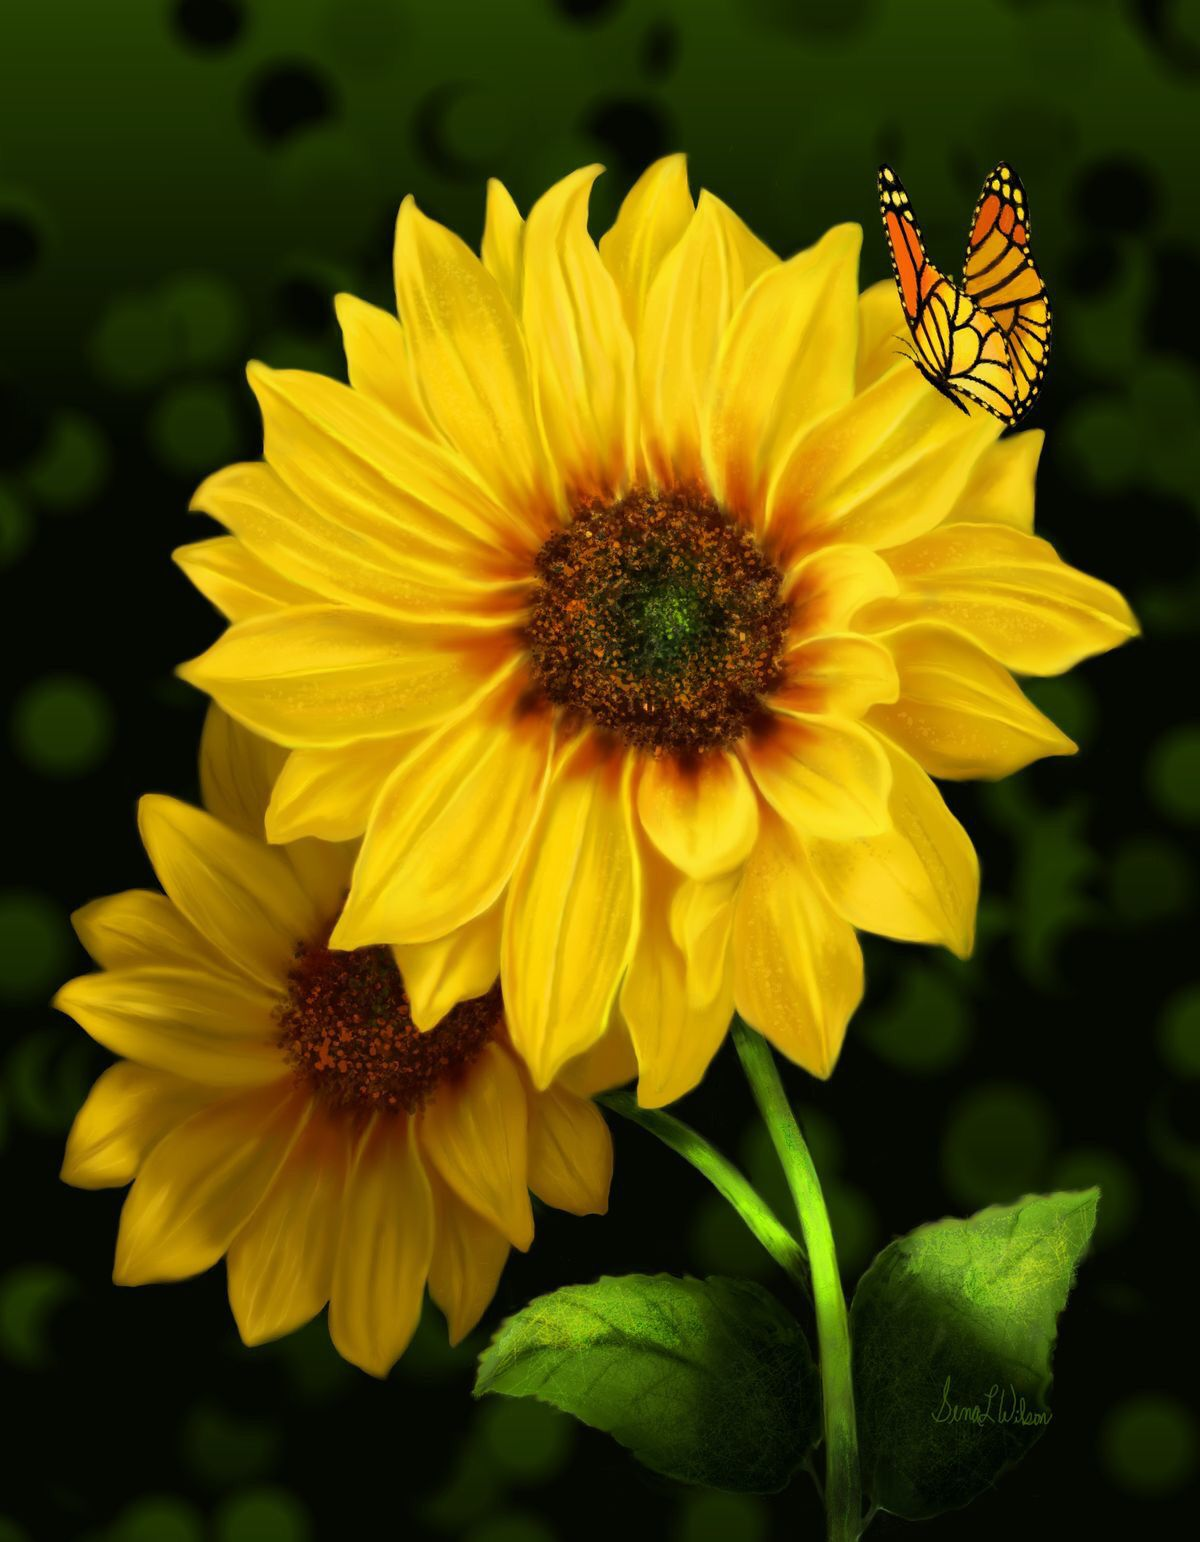 Pin by Amanda Gregg on cool plants | Wonderful flowers, Flowers nature, Sunflowers, daisies